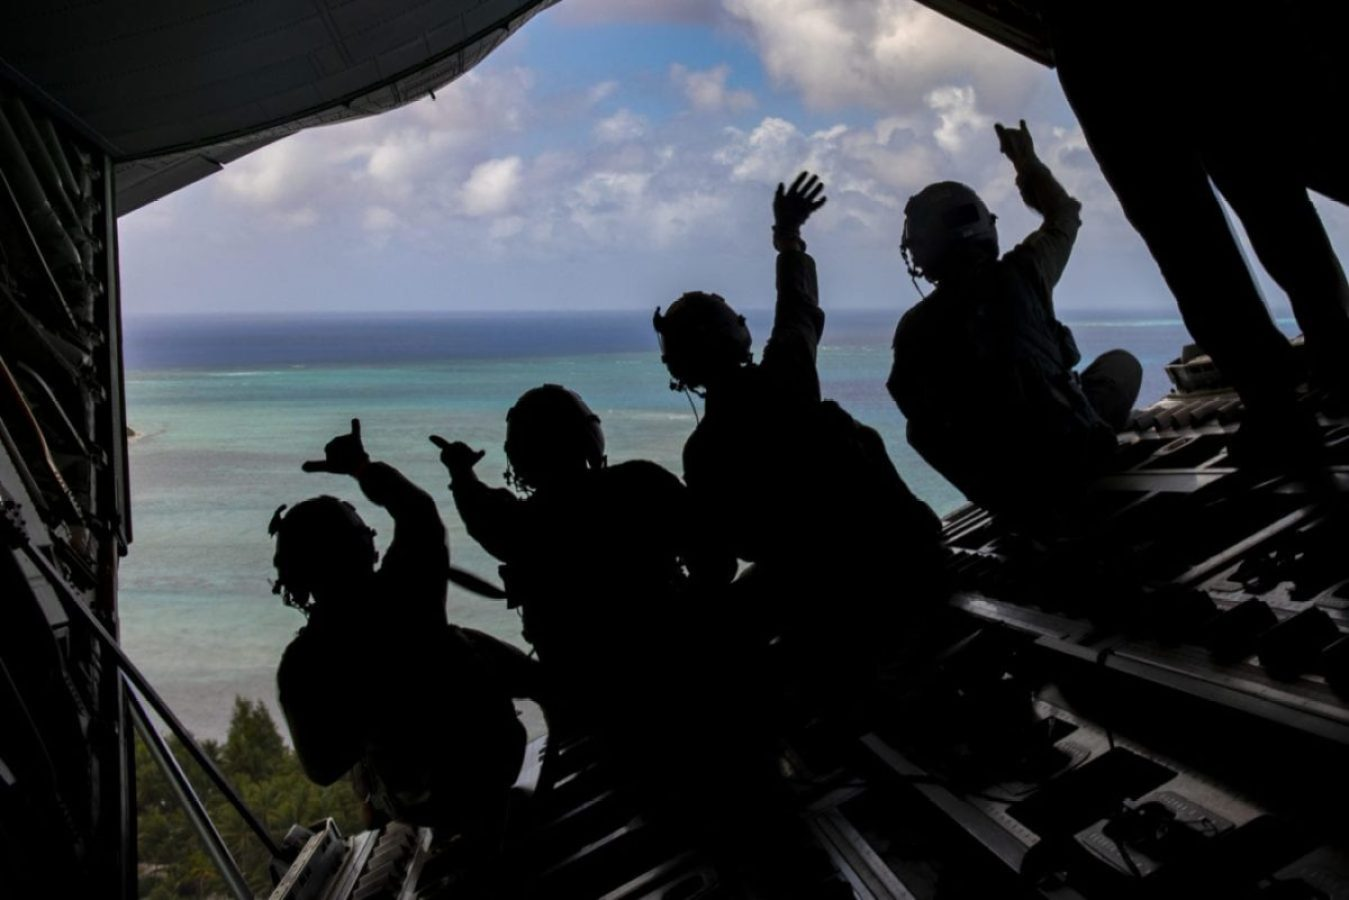 Loadmasters with the 36th Airlift Squadron out of Yokota Air Base, Japan wave to the villagers on the island of Norwin, Federated States of Micronesia, after delivering four Low-Cost, Low Altitude humanitarian assistance bundles during Operations Christmas Drop, Dec. 13, 2019. ( U.S. Air Force photo by Senior Airman Matthew Gilmore)